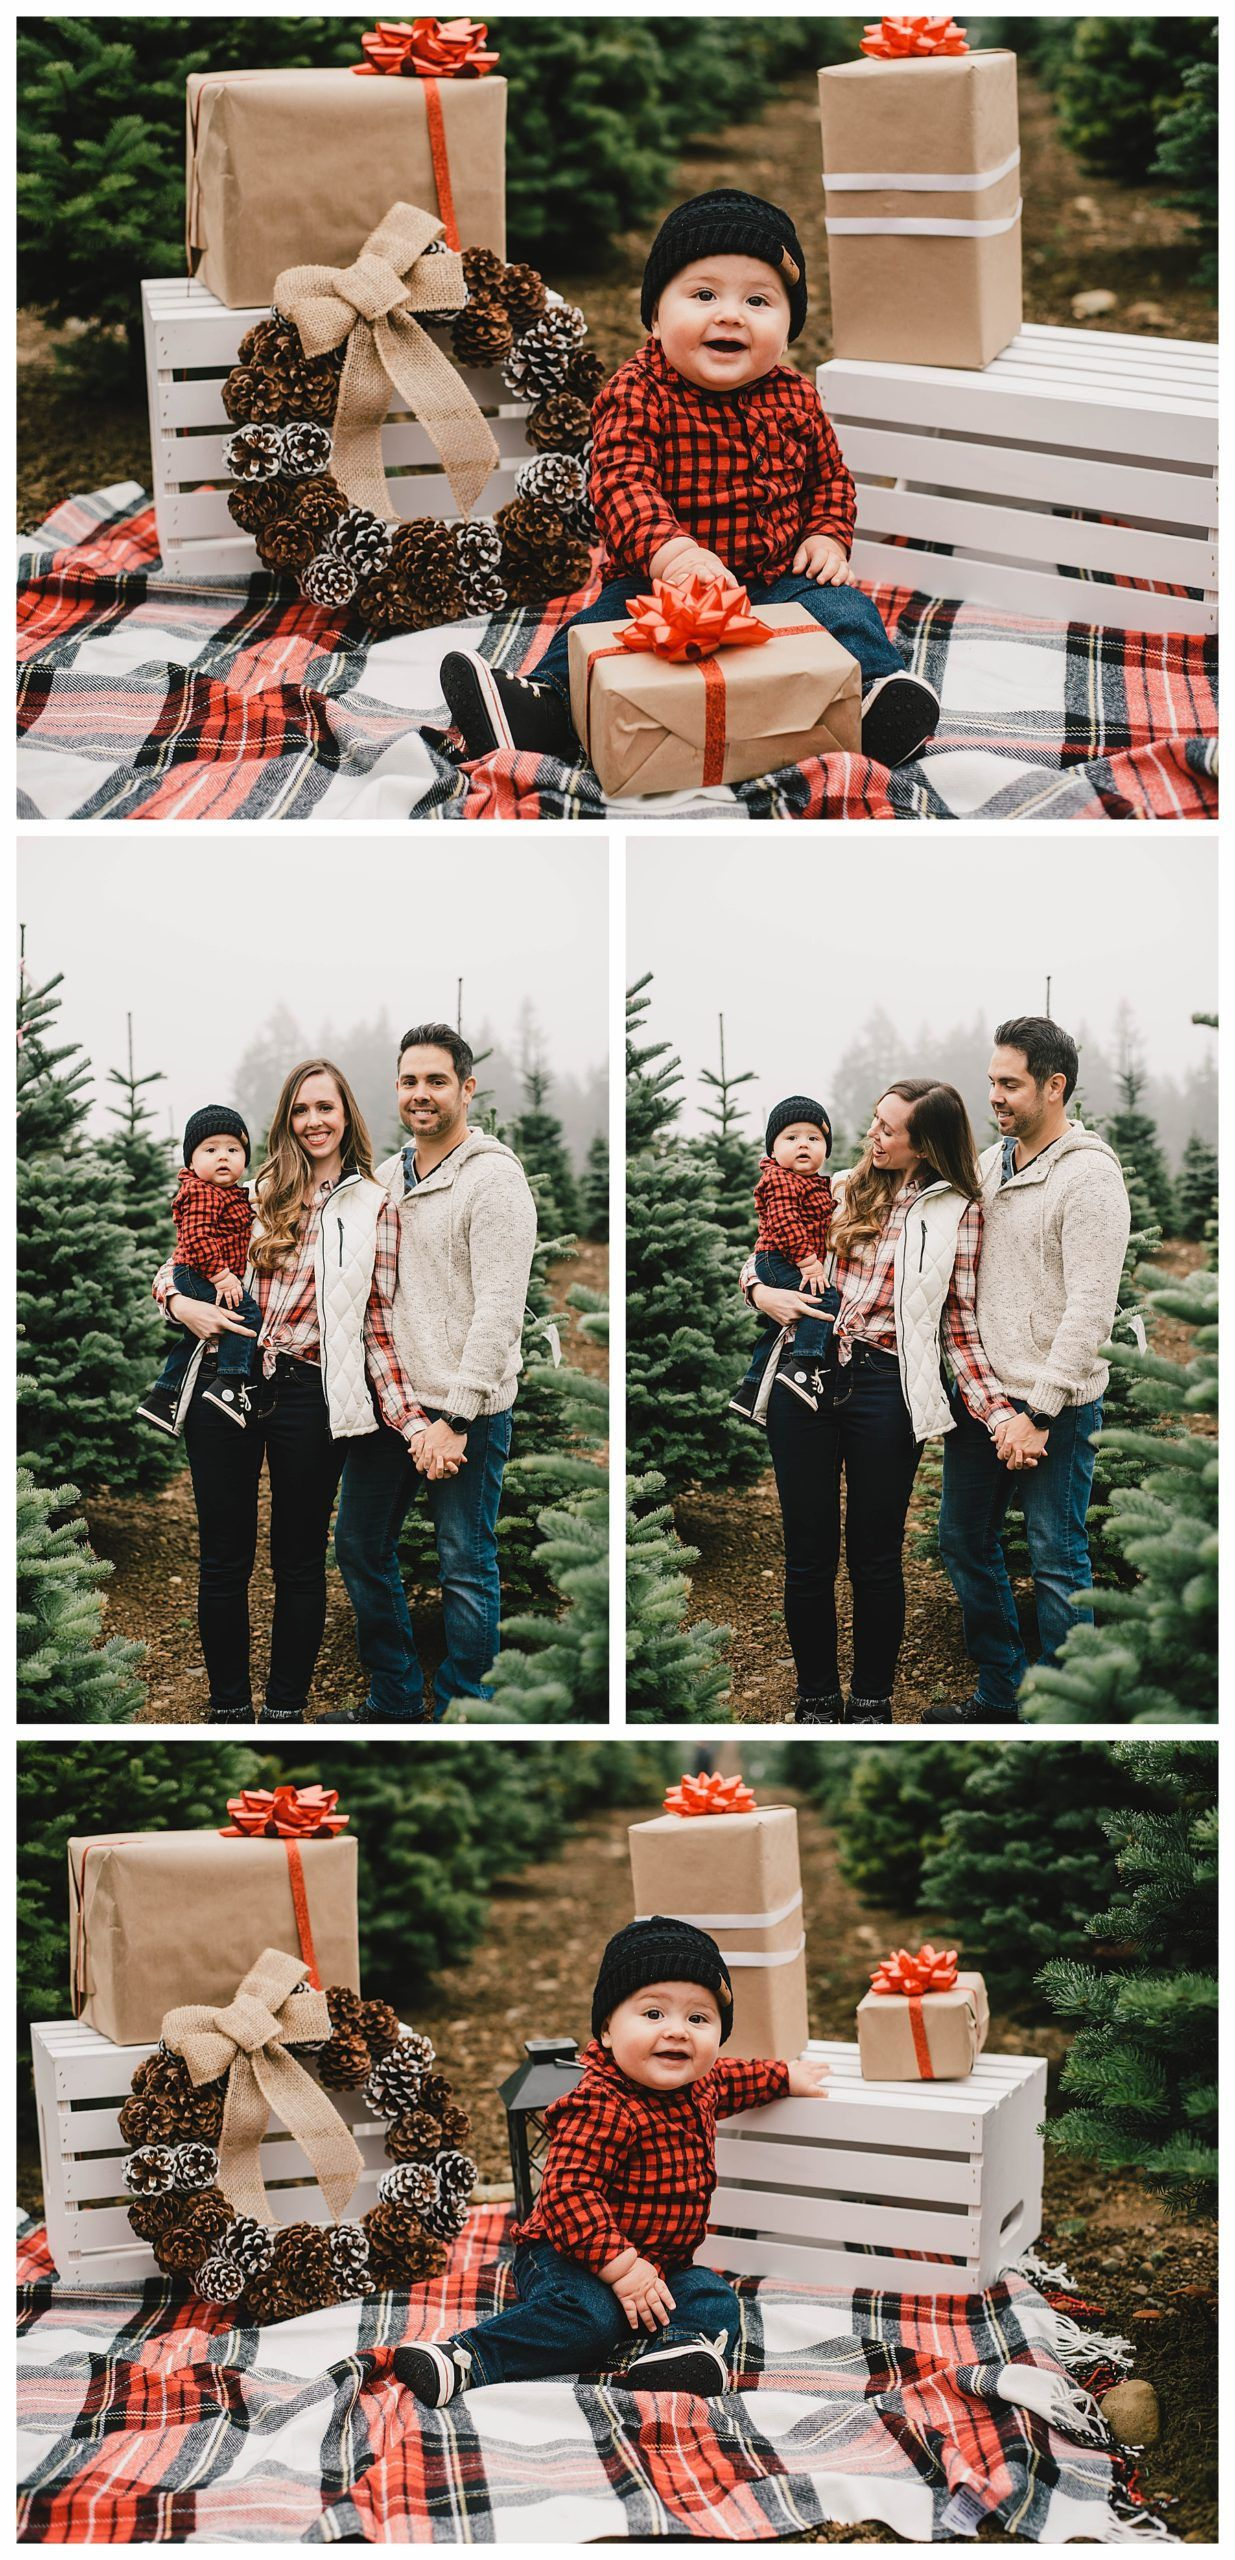 Christmas 2020 Kitsap Kitsap County Family Photographer | Hubert's Christmas Trees